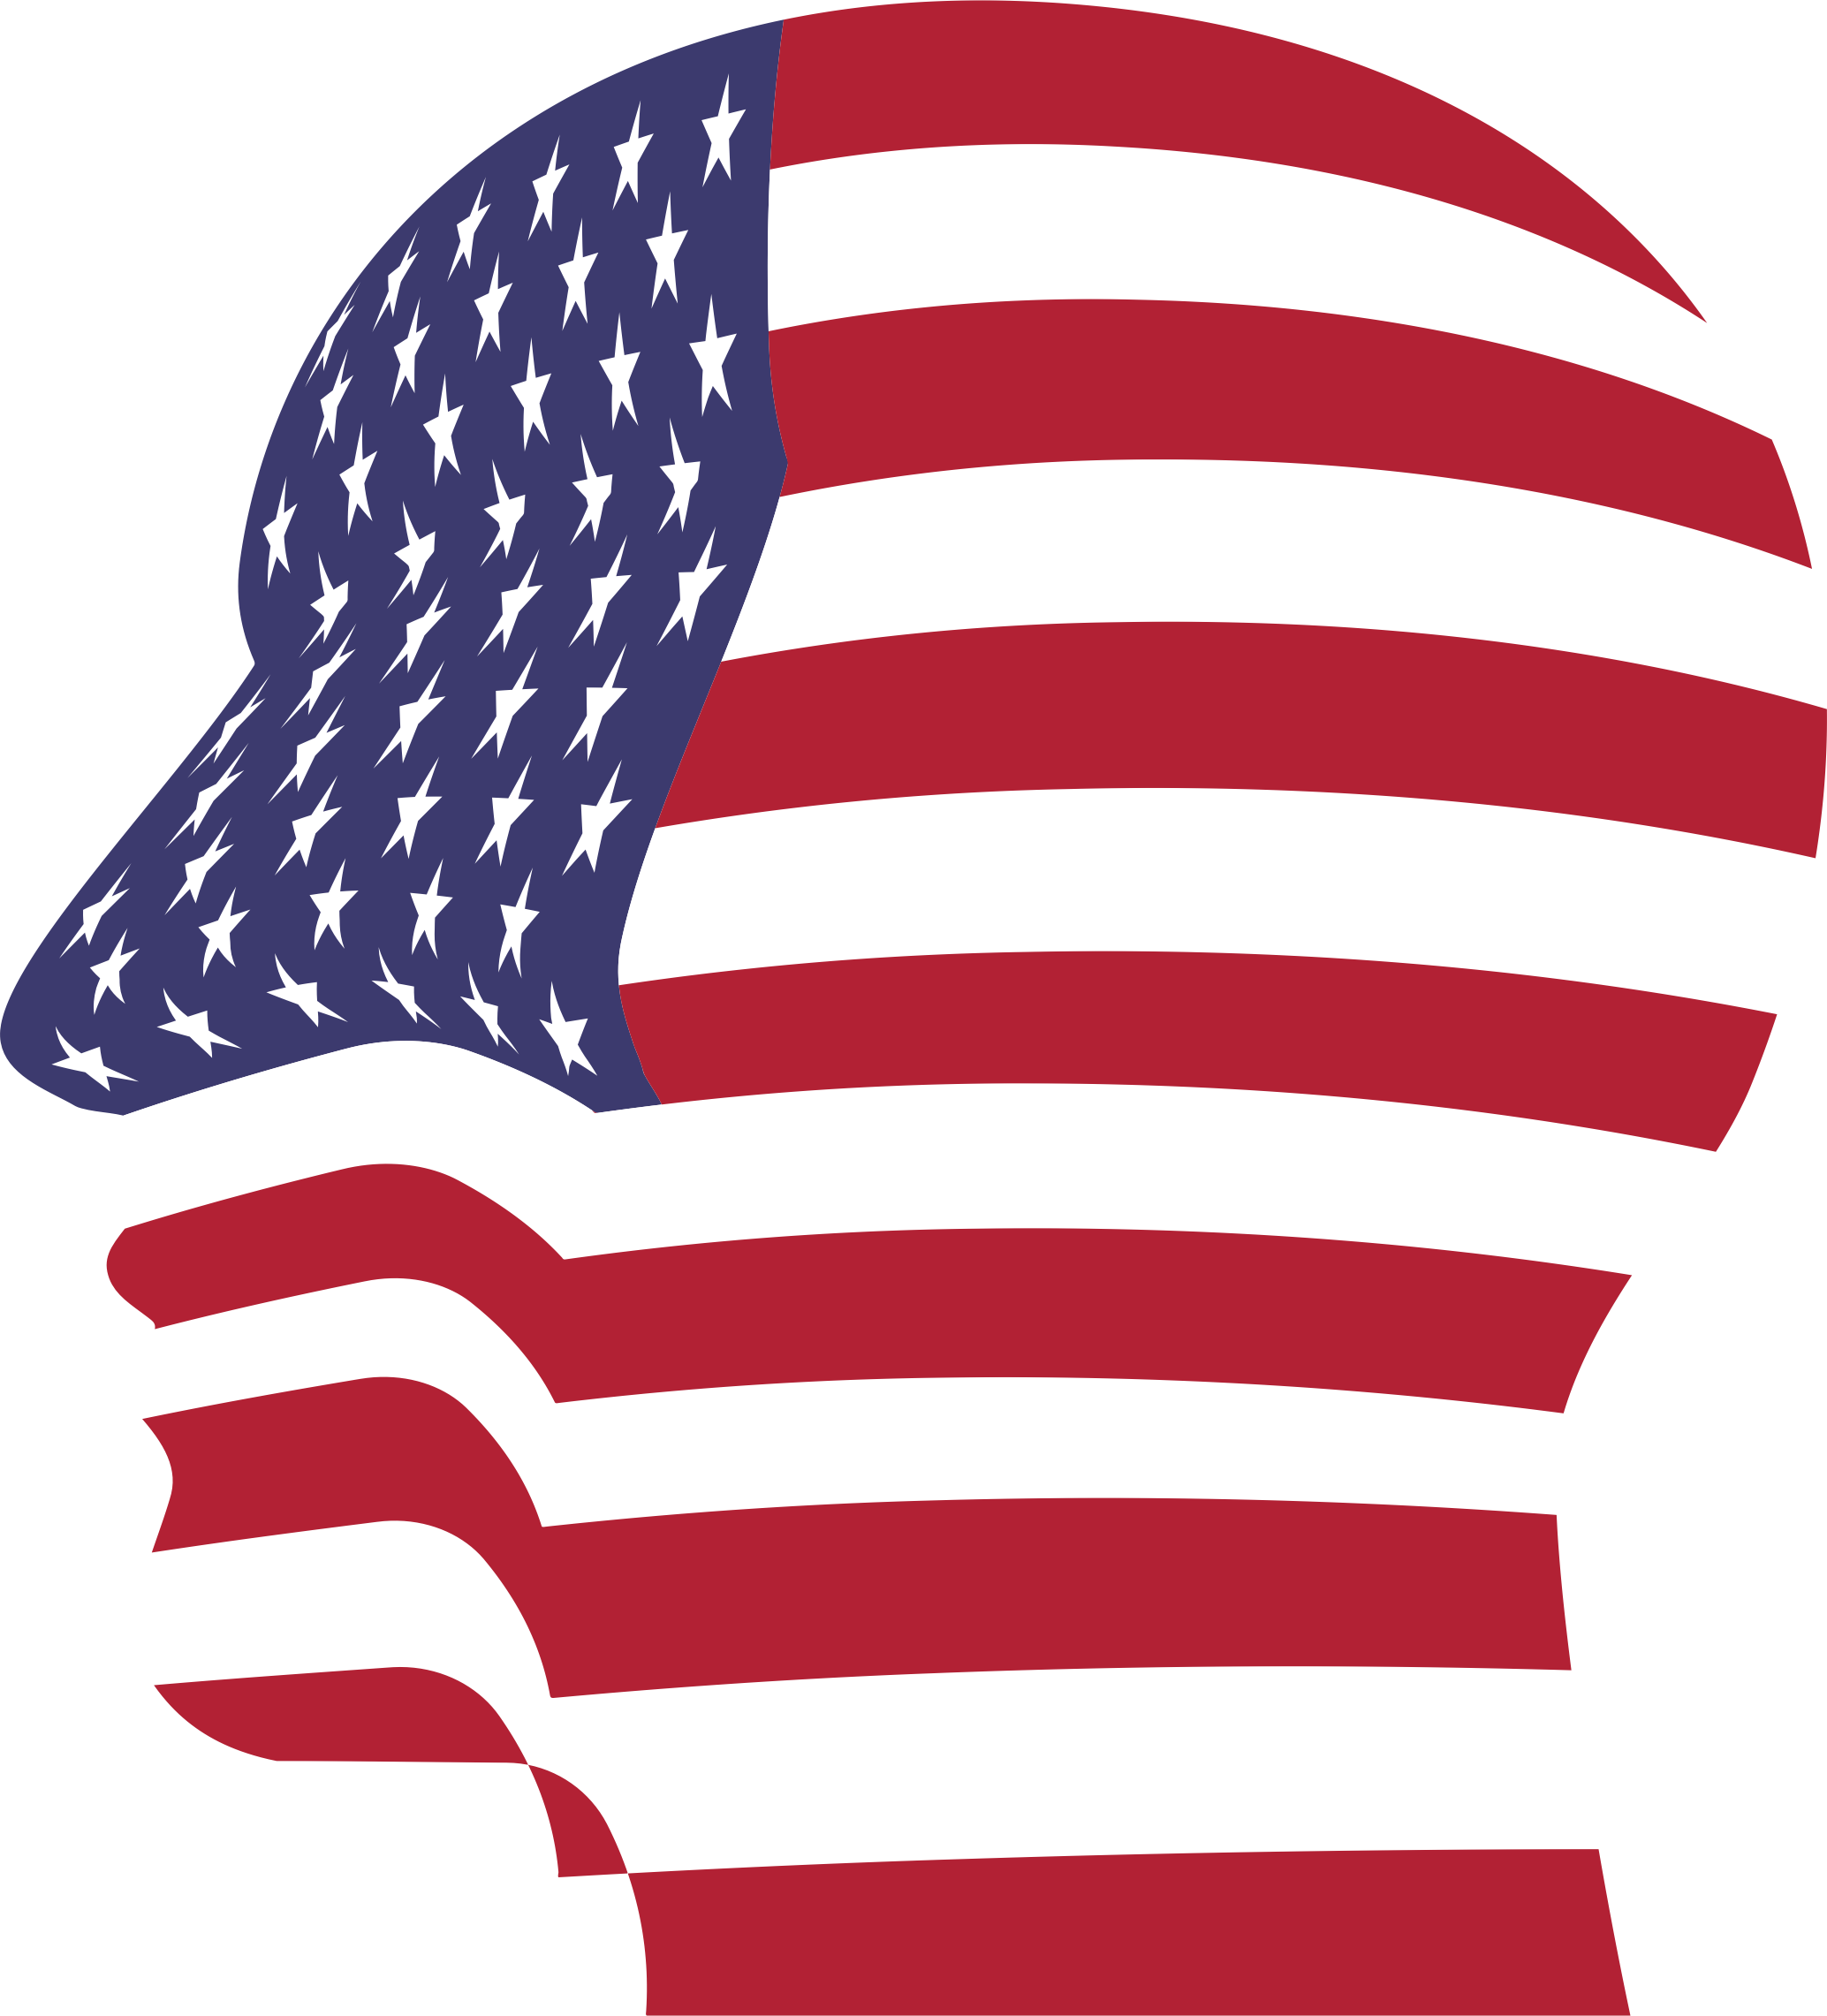 United states of america flag clipart jpg black and white download Clipart - Man Head America Flag jpg black and white download